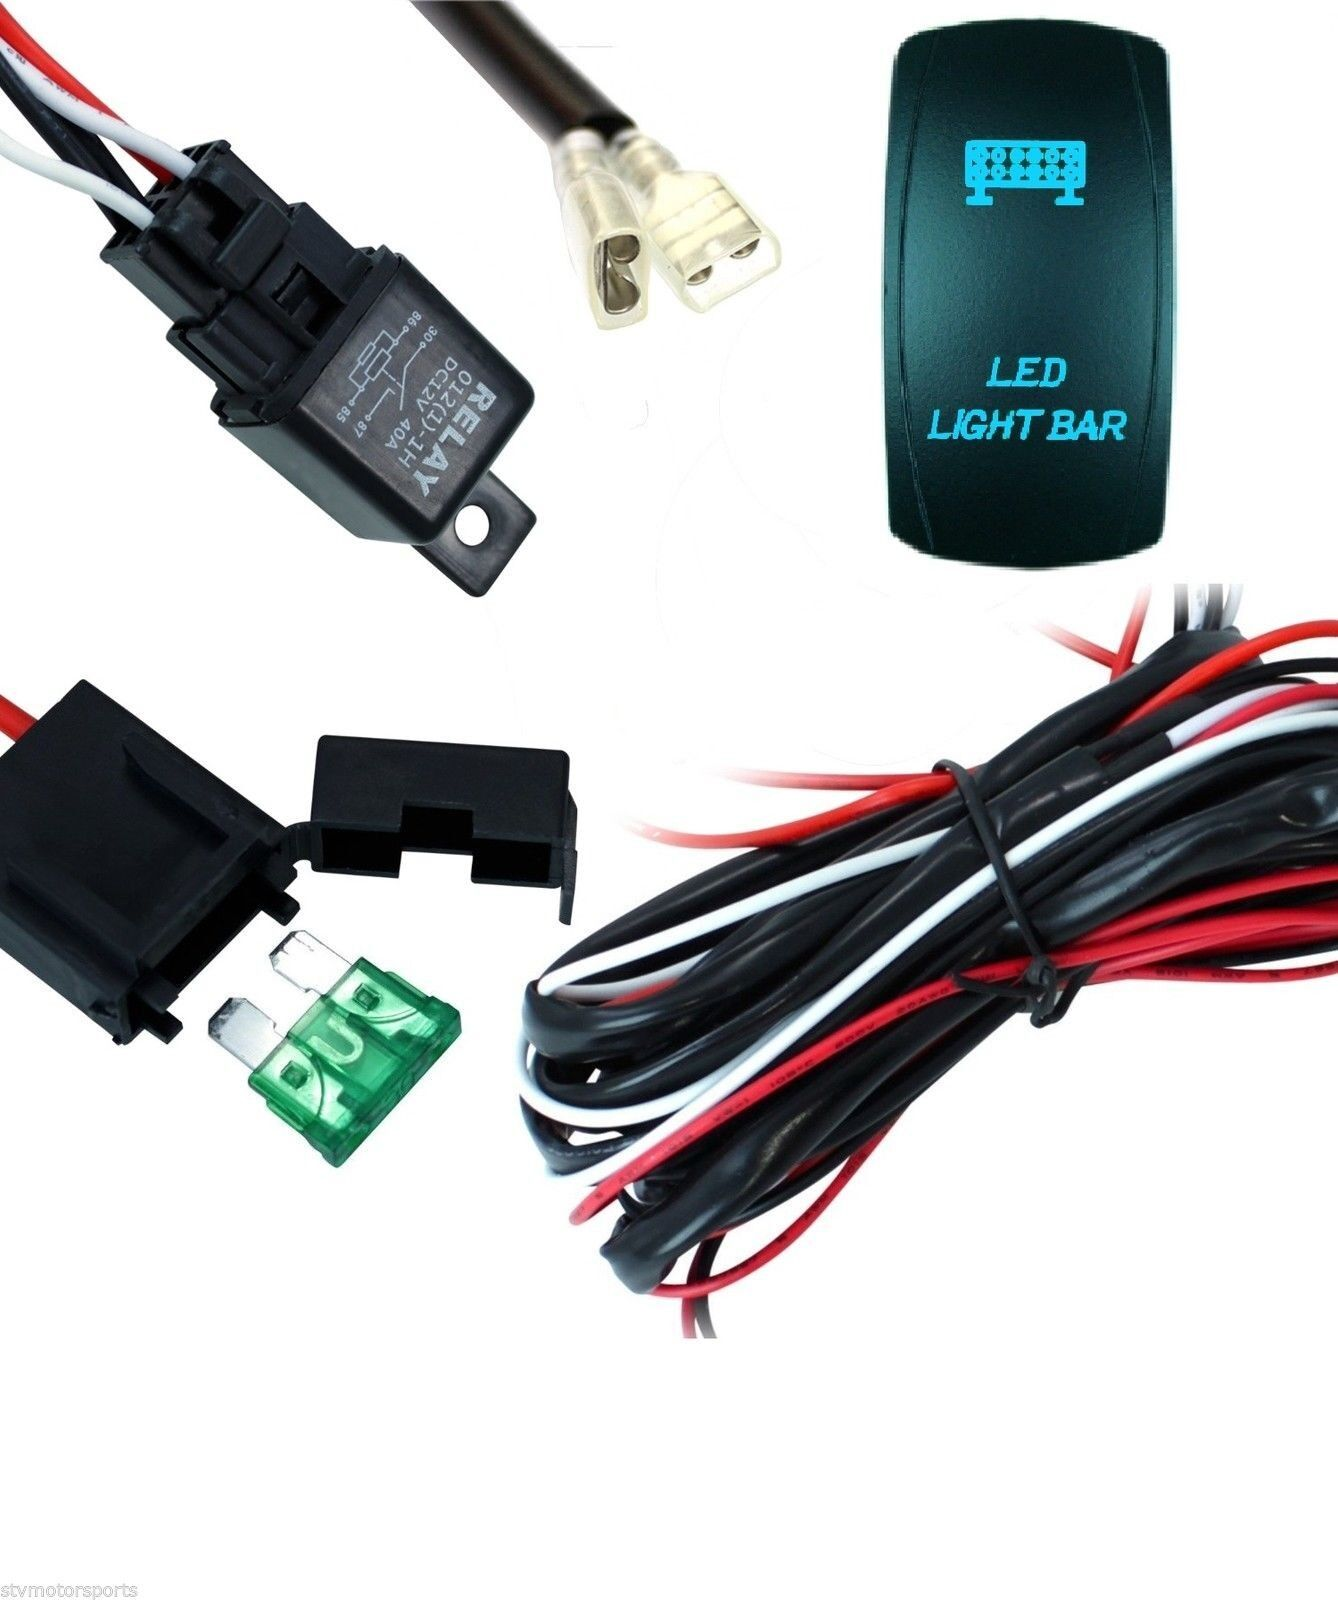 led light bar 40 amp wiring harness with relay and backlit blue switch ebay Engine Wiring Harness Wiring Harness Diagram